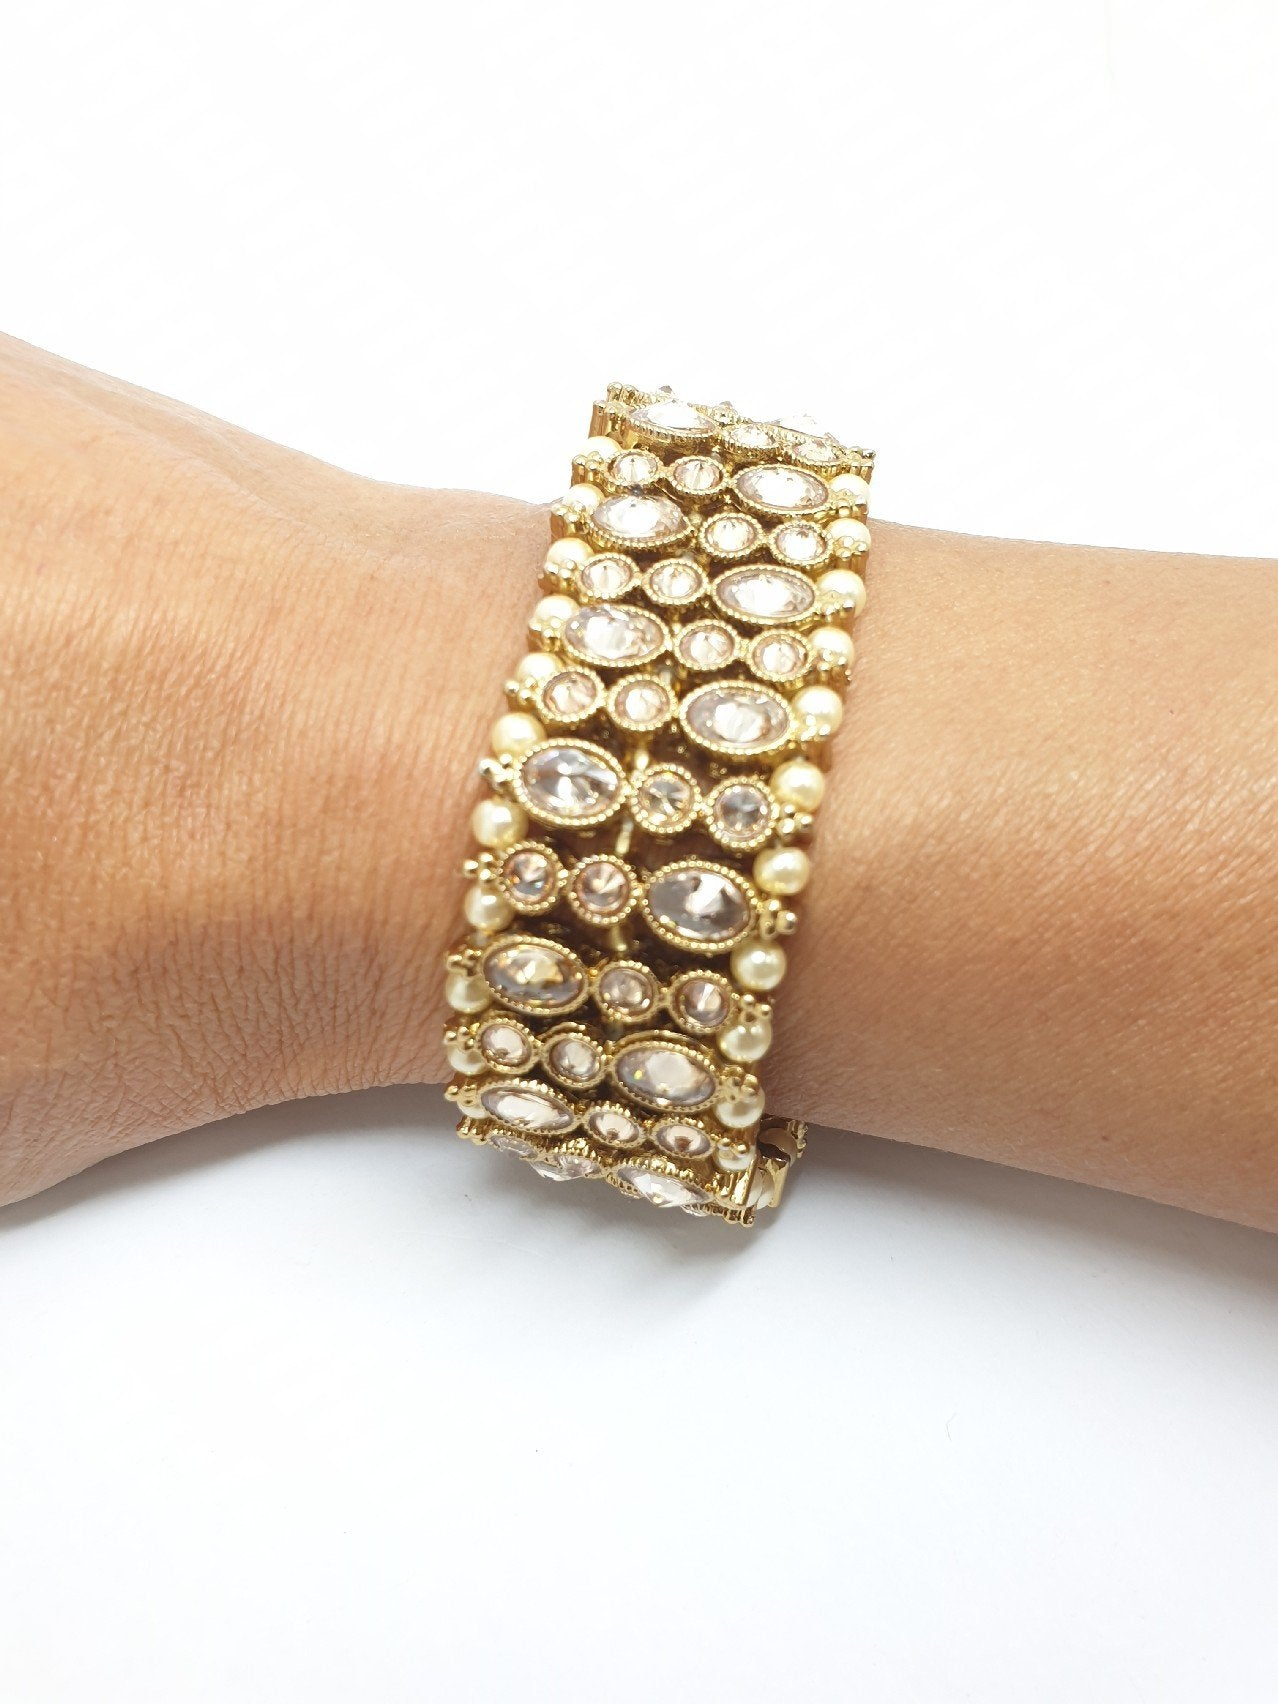 Soft Reverse Stone Bracelet - Fashion Jewellery - Bollywood - Weddings - JIG388R 0919 - Prachy Creations